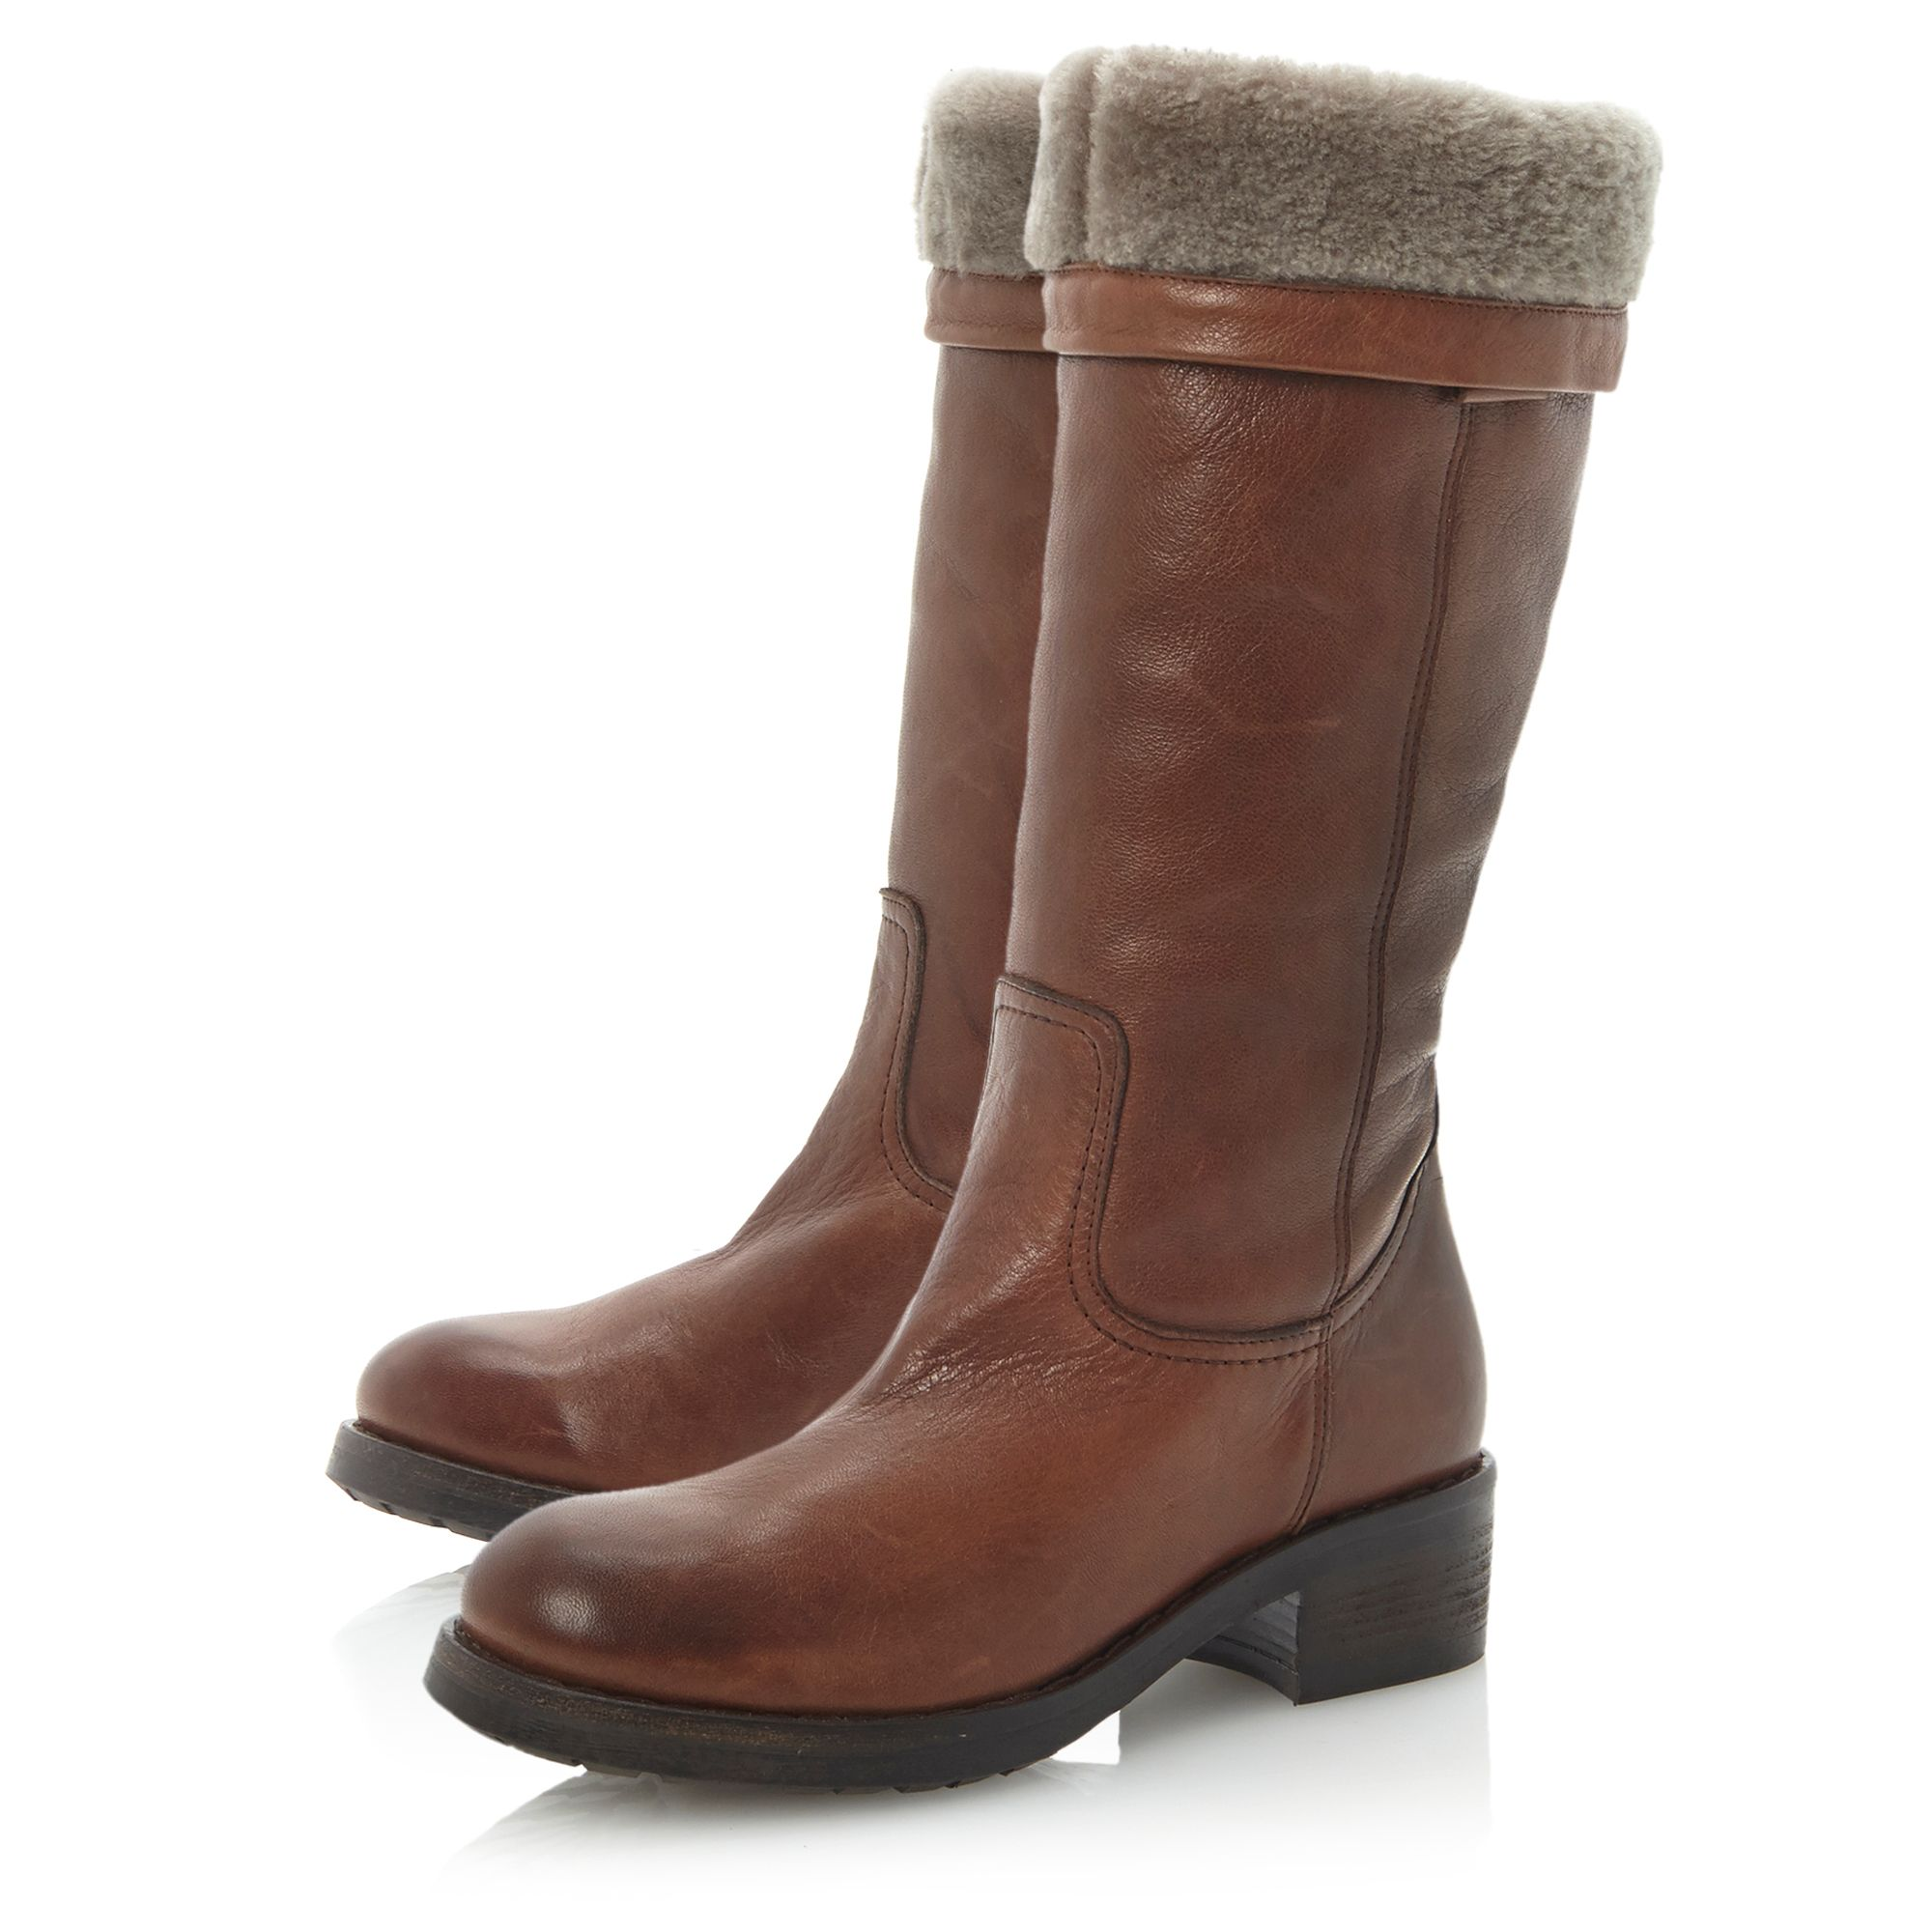 Presto pull on faux fur lined boots